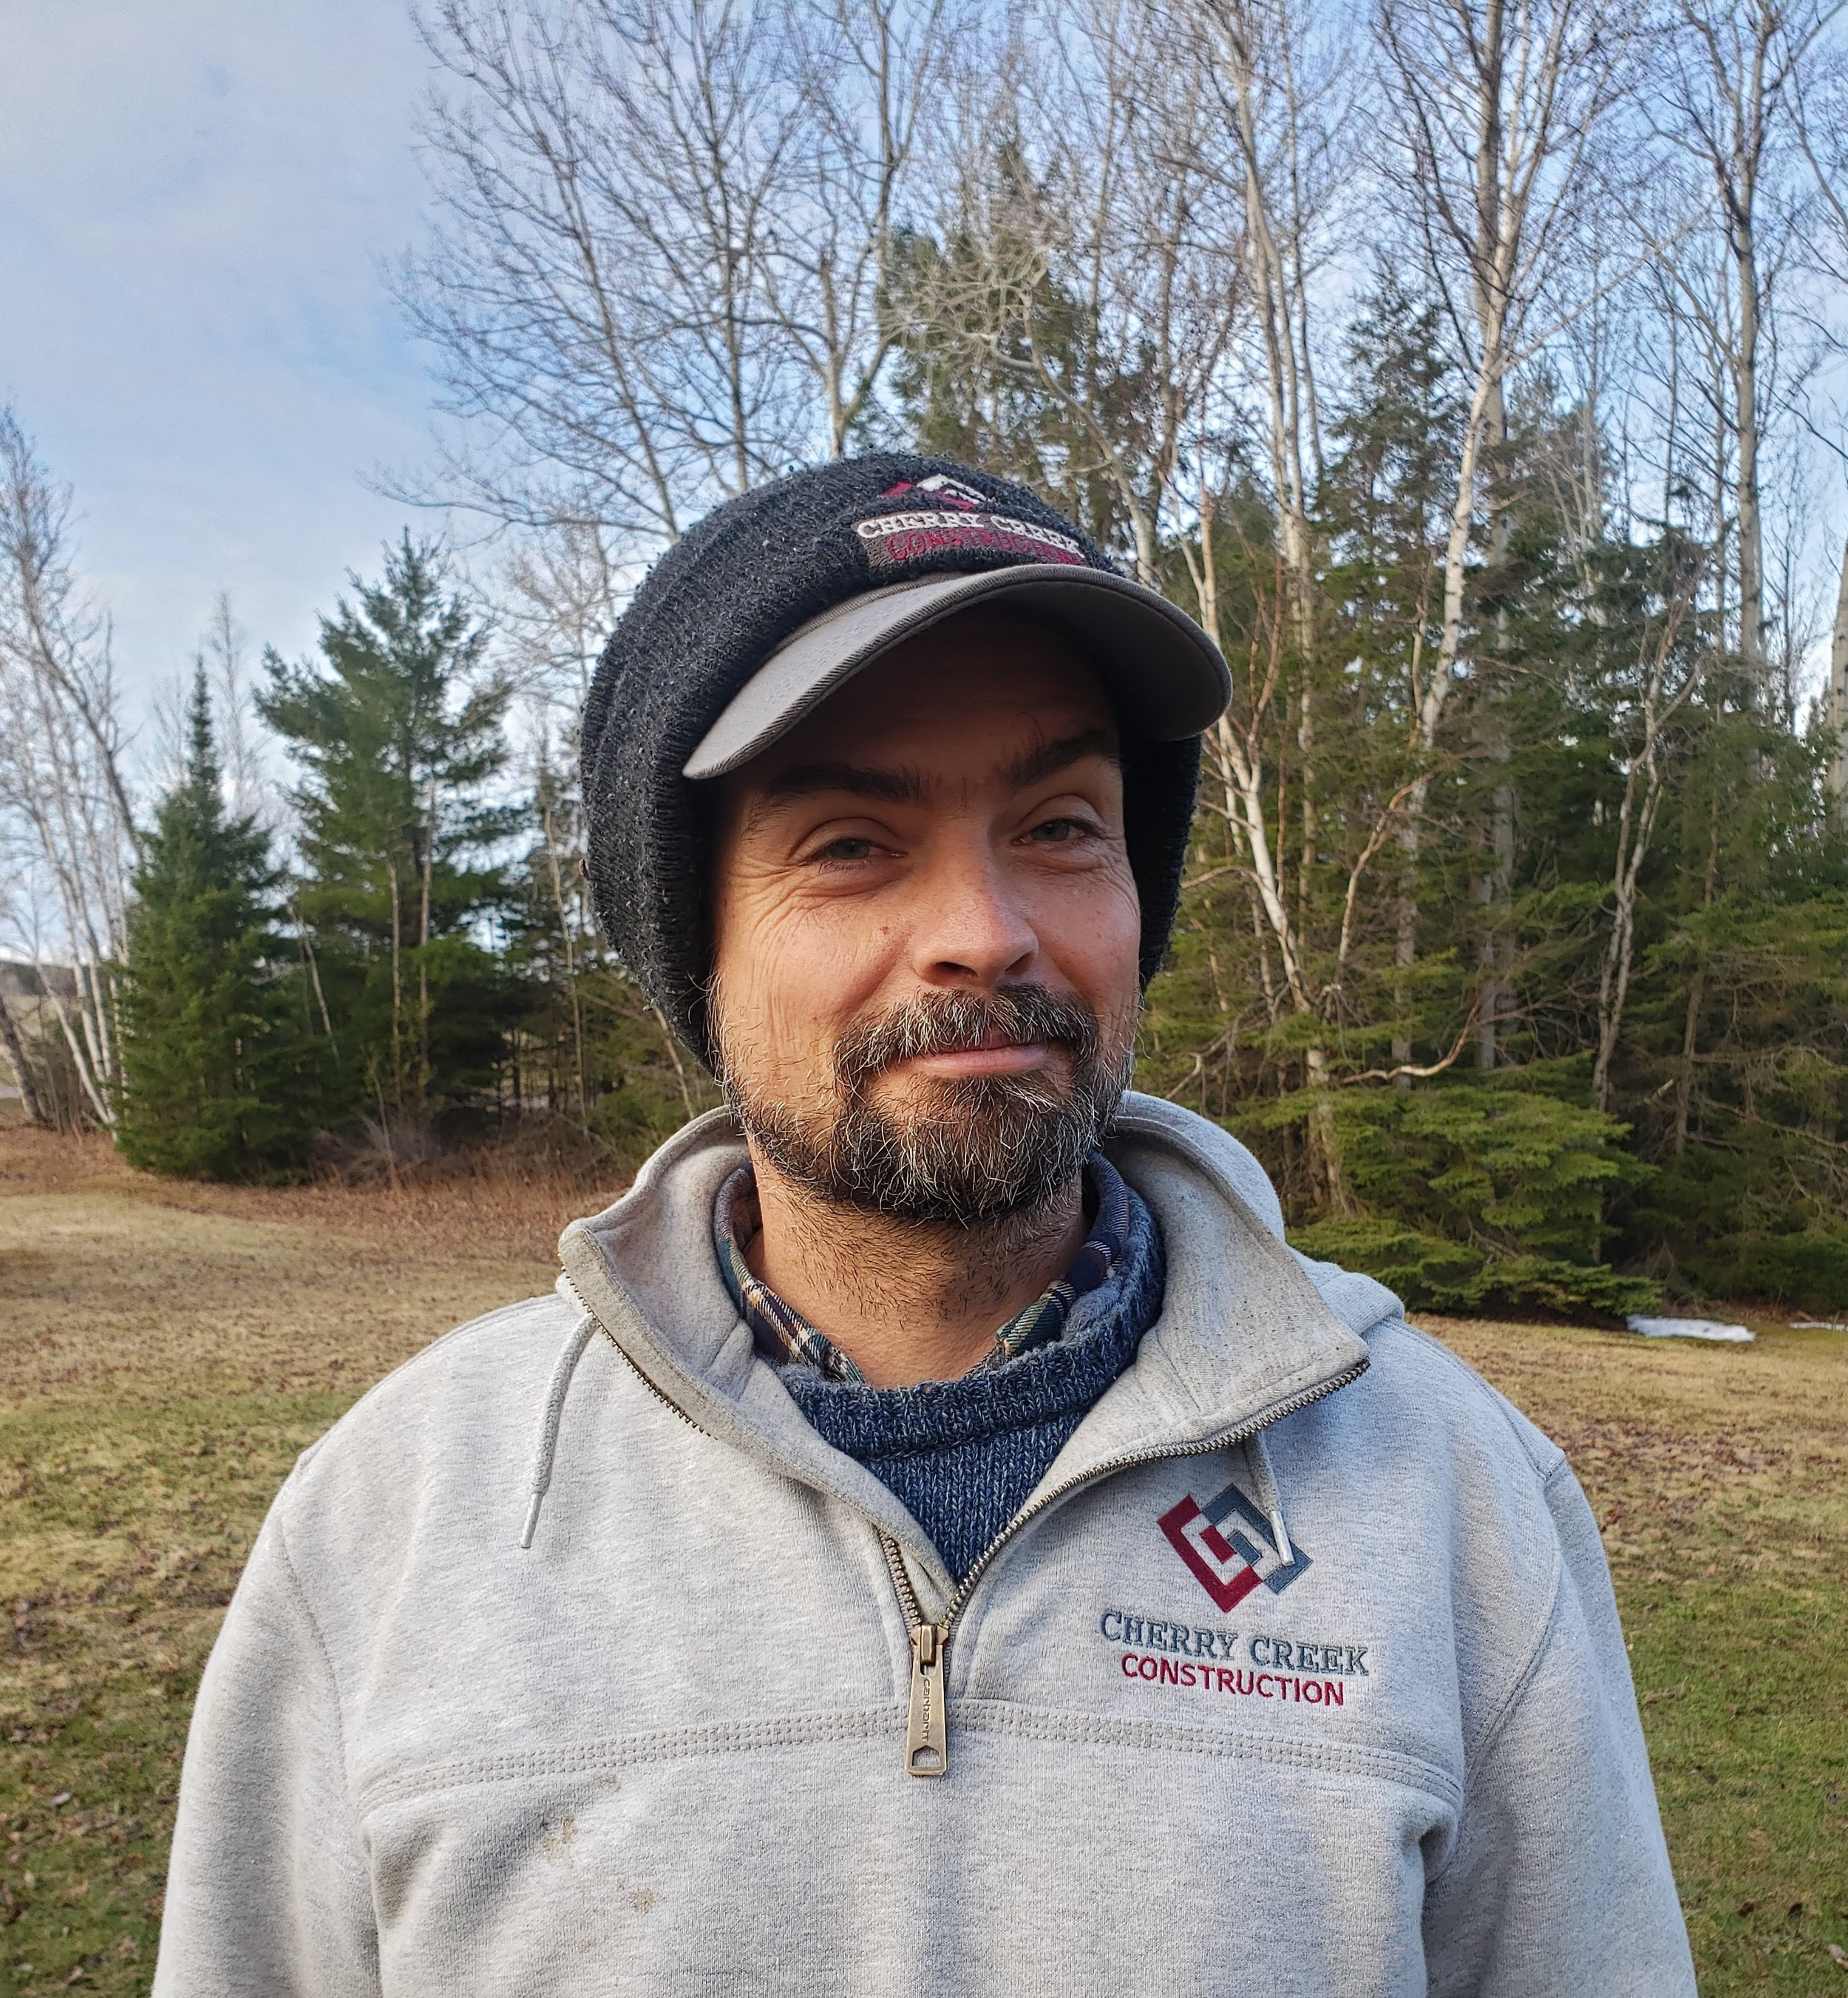 Chris Cookingham - Chris, carpenter, has lived in the U.P. for years and has a keen eye for complicated finish carpentry. In his spare time, he loves to trail run on the miles of single track around Marquette and spend quality time with his daughter.